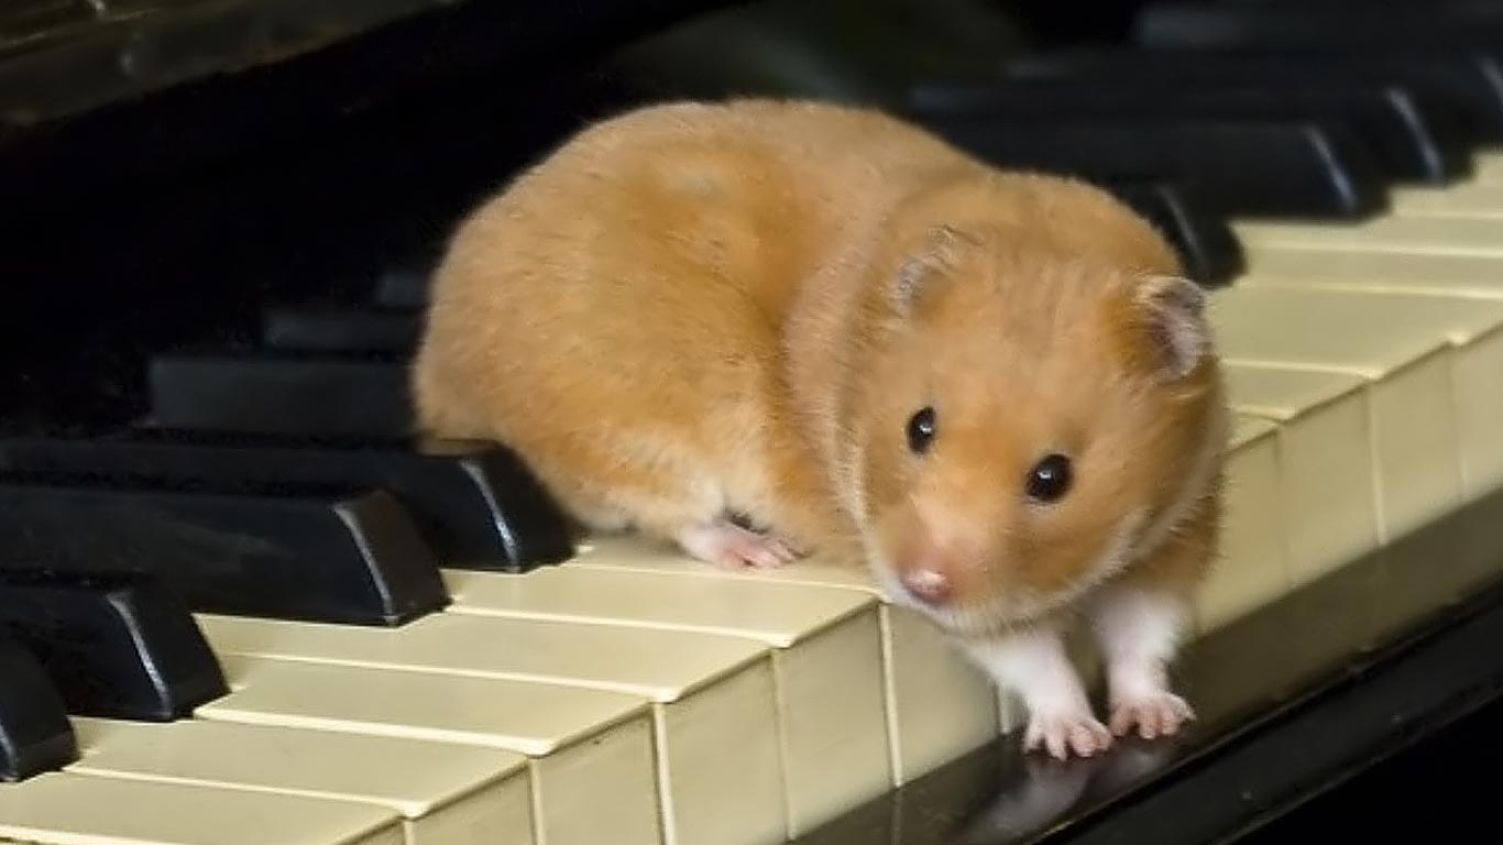 Download free HD Hamster Computer 1366×768 Wallpaper, image